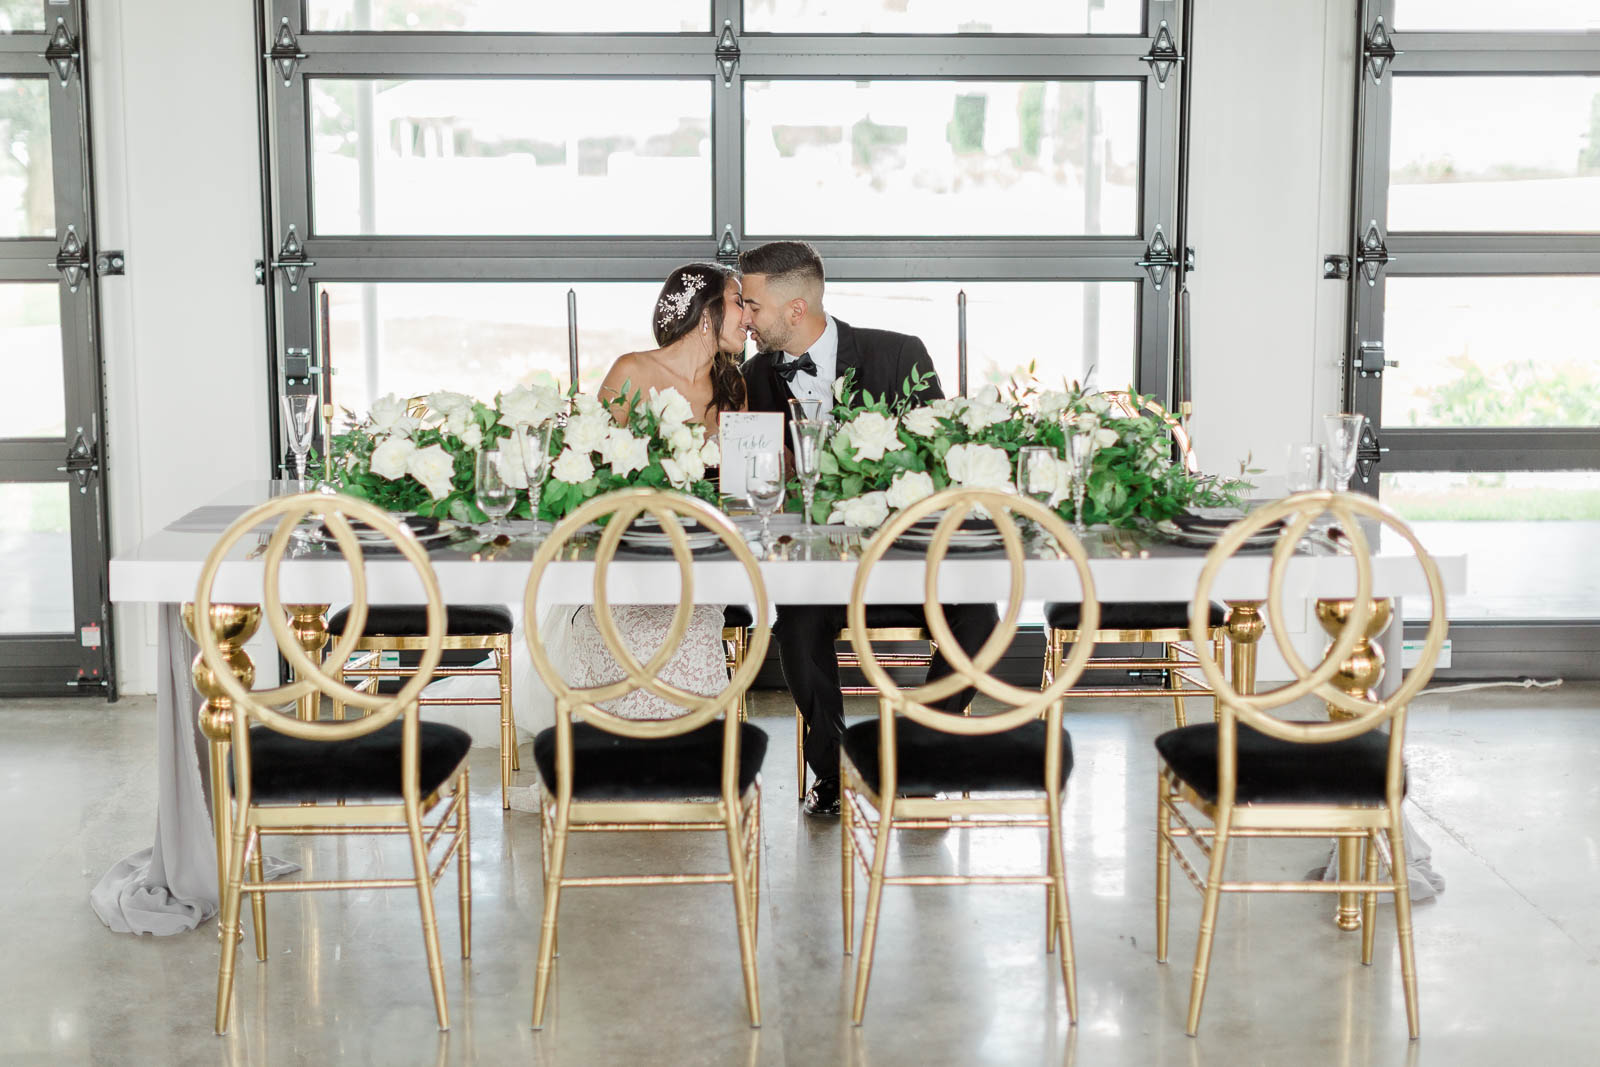 Bride and groom sitting at reception table